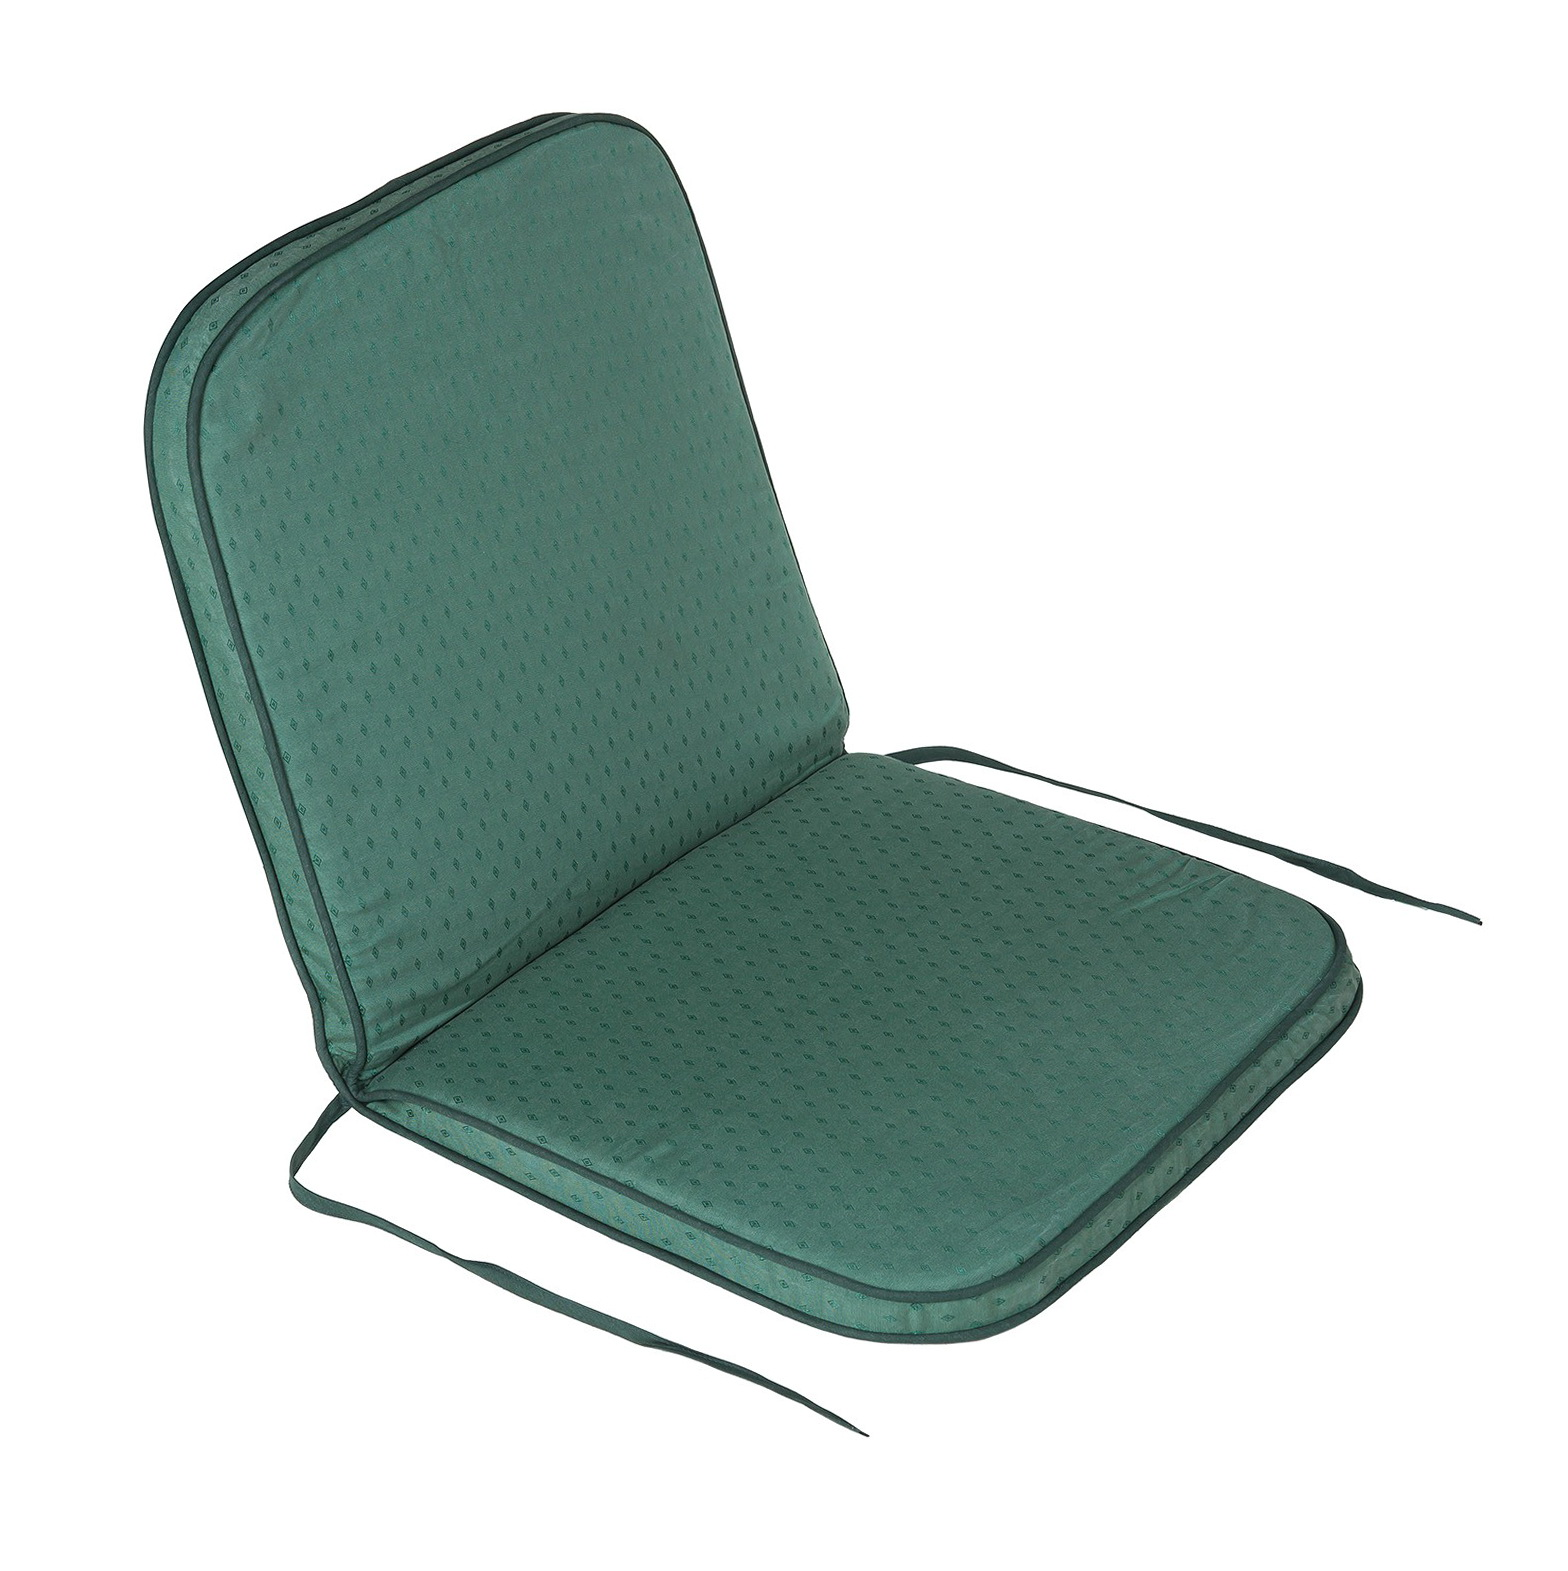 Cushion For Chair Back